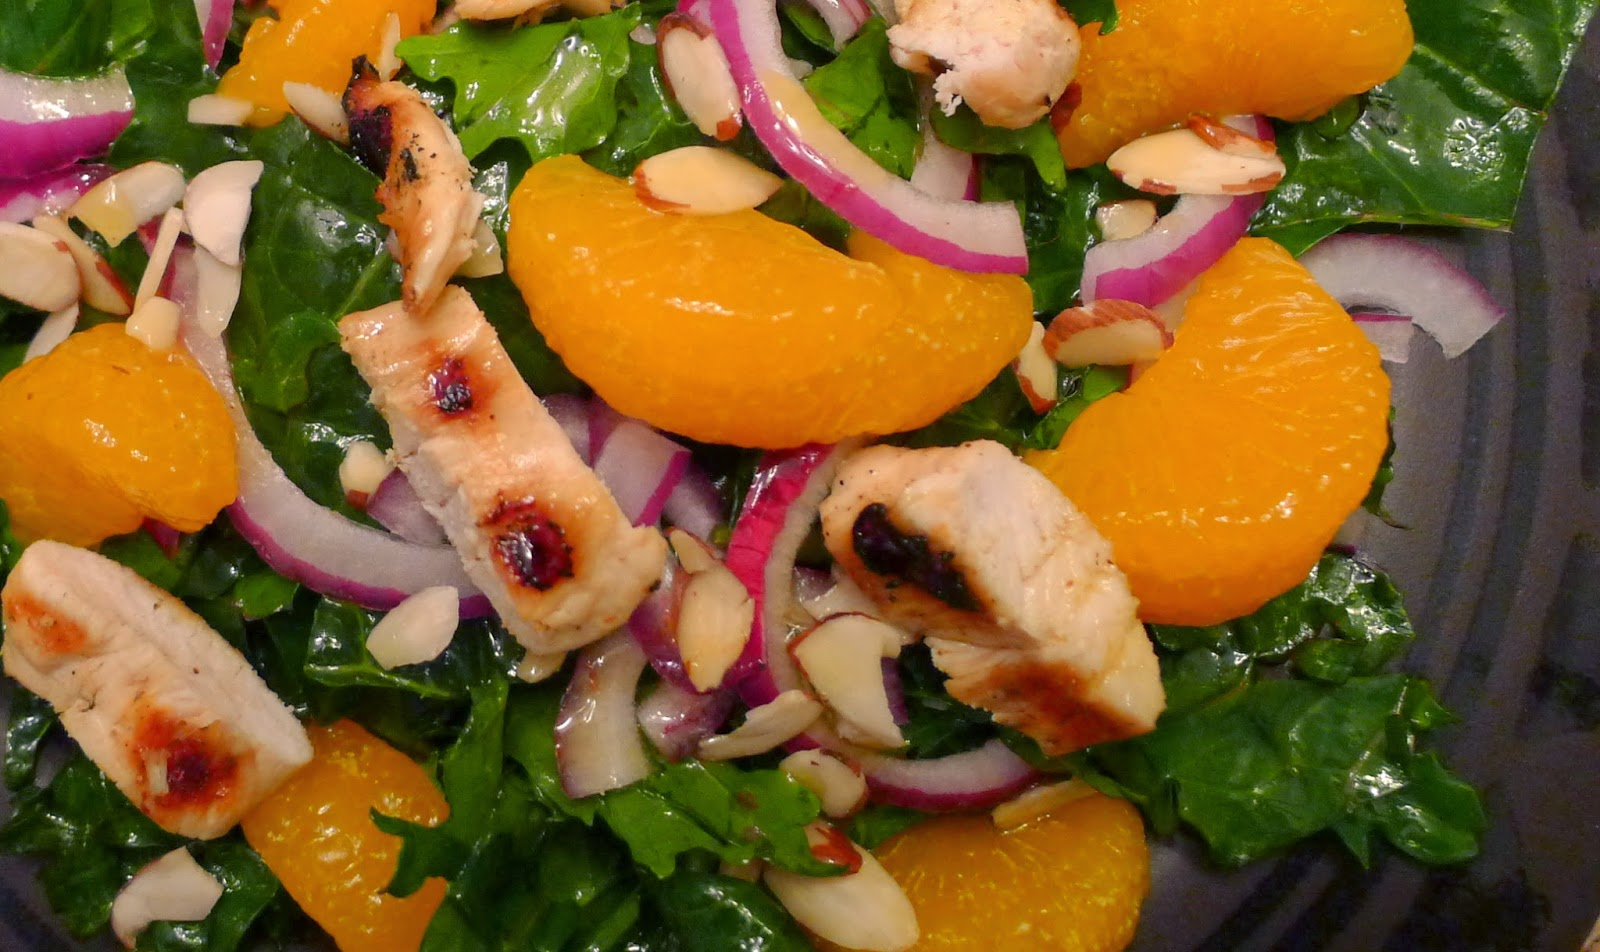 Softened Kale, Chicken and Citrus Salad